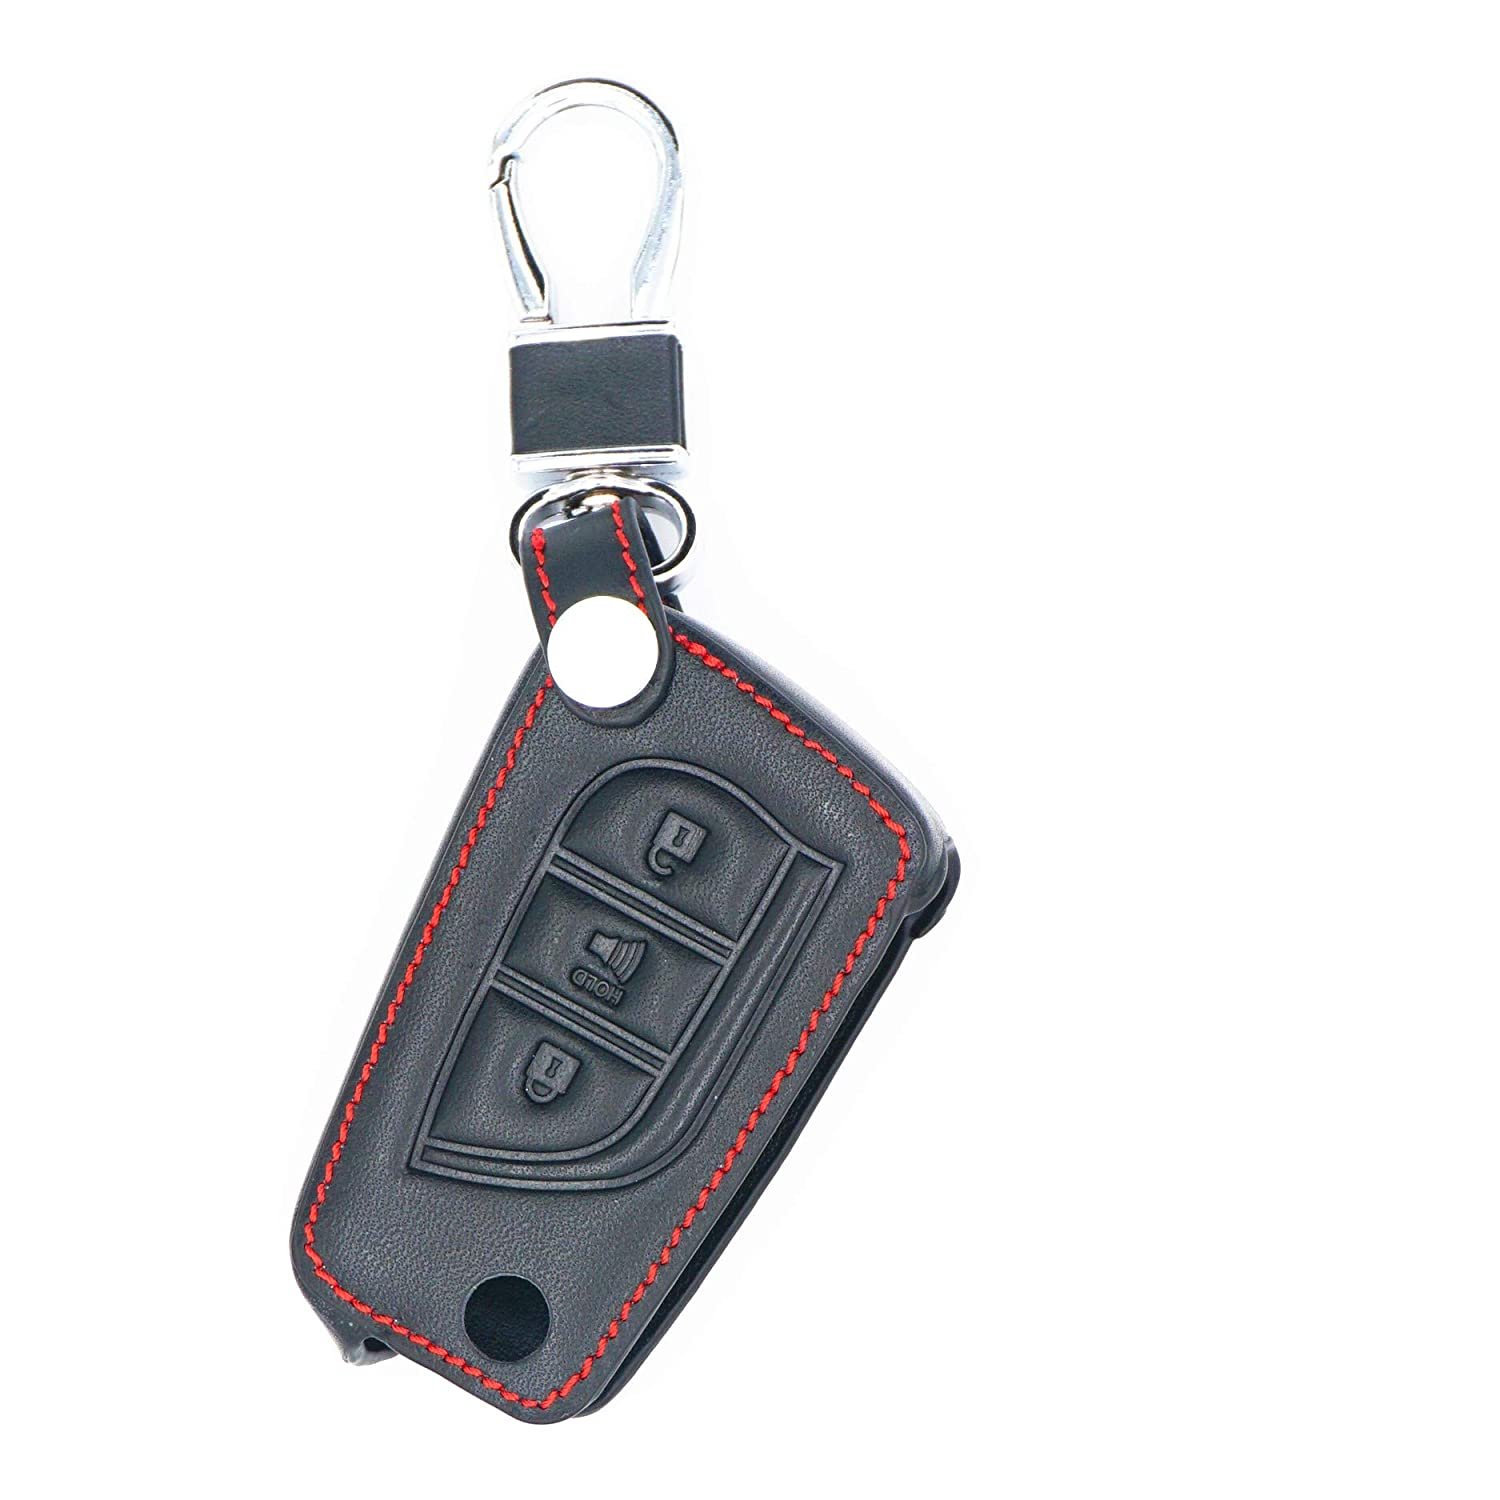 MJKEY 3 Buttons Genuine Leather Keyless Entry Remote Control Smart Flip Key Case Fob Cover Jacket Shell Bag Holder Protector For 2018 2017 Toyota Corolla iM HYQ12BBY Auto tool